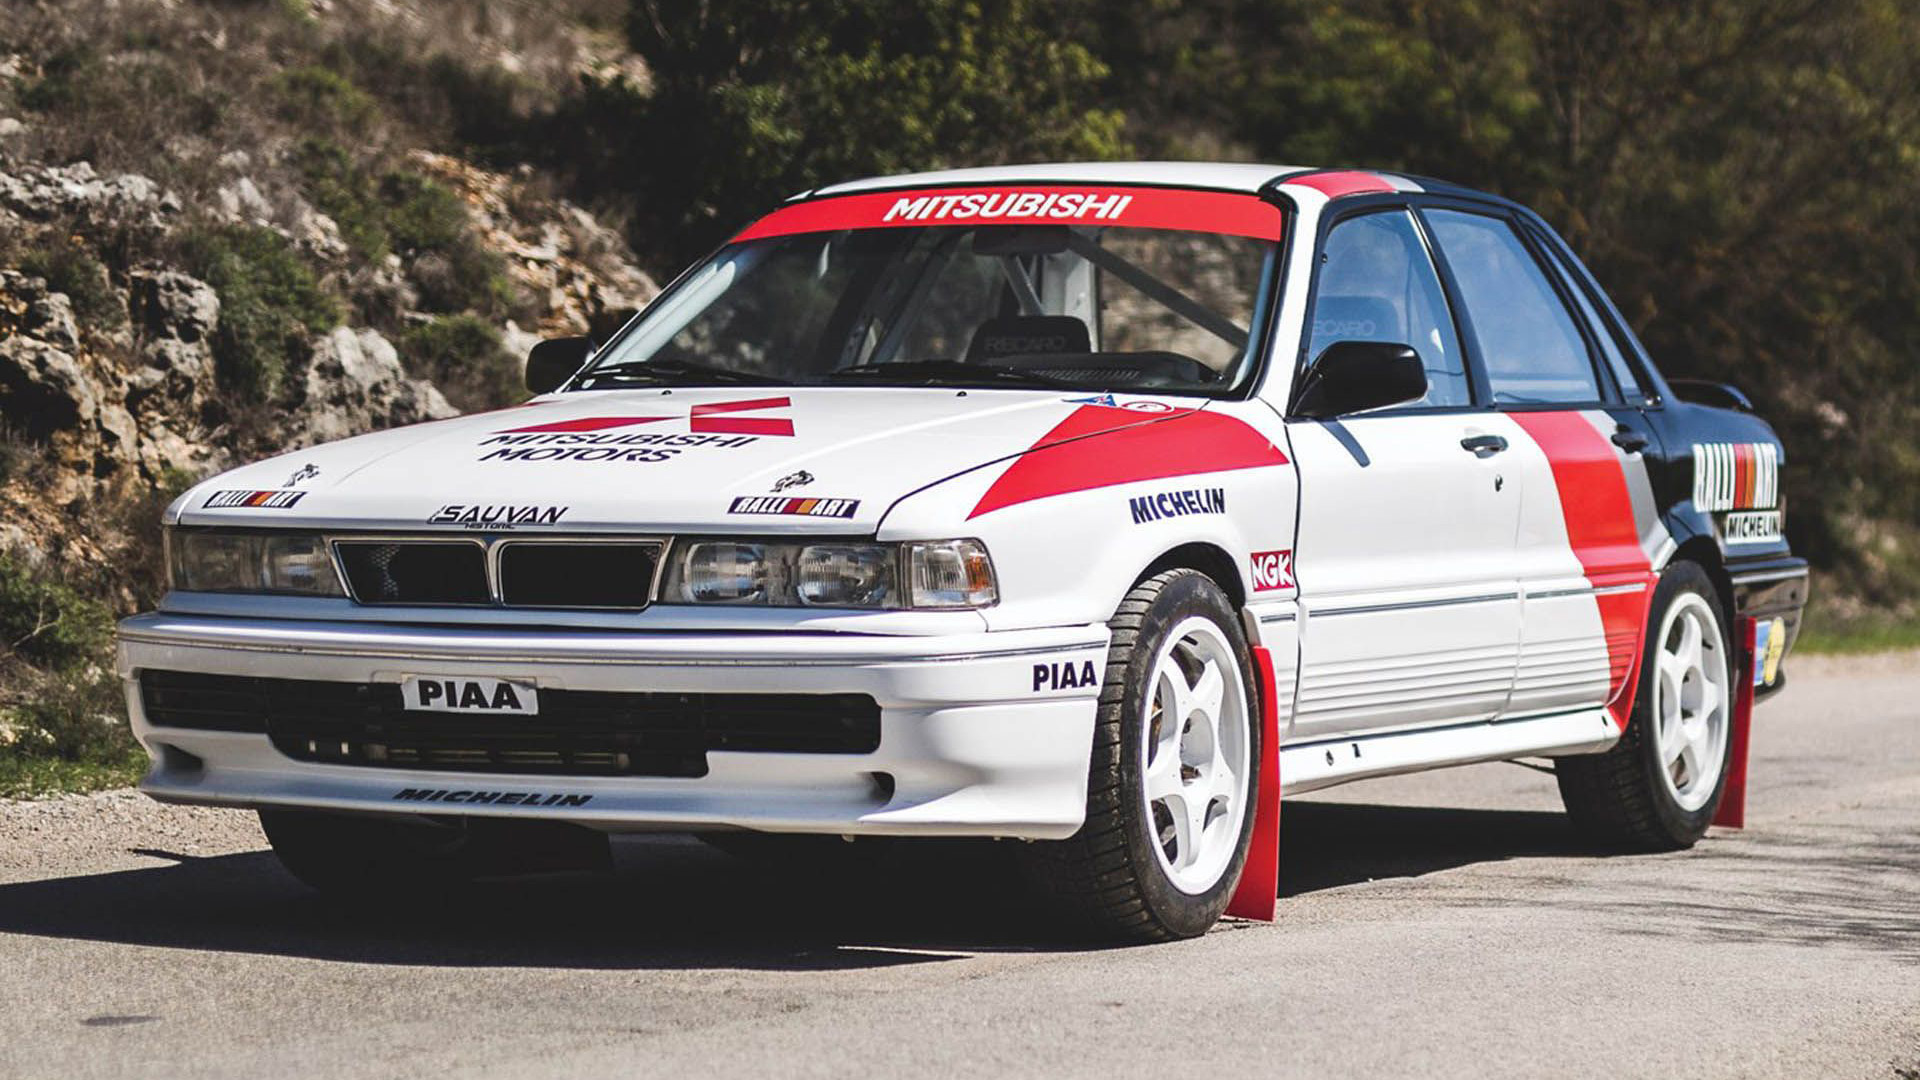 Classified of the week: Mitsubishi Galant VR-4 rally car   Top Gear